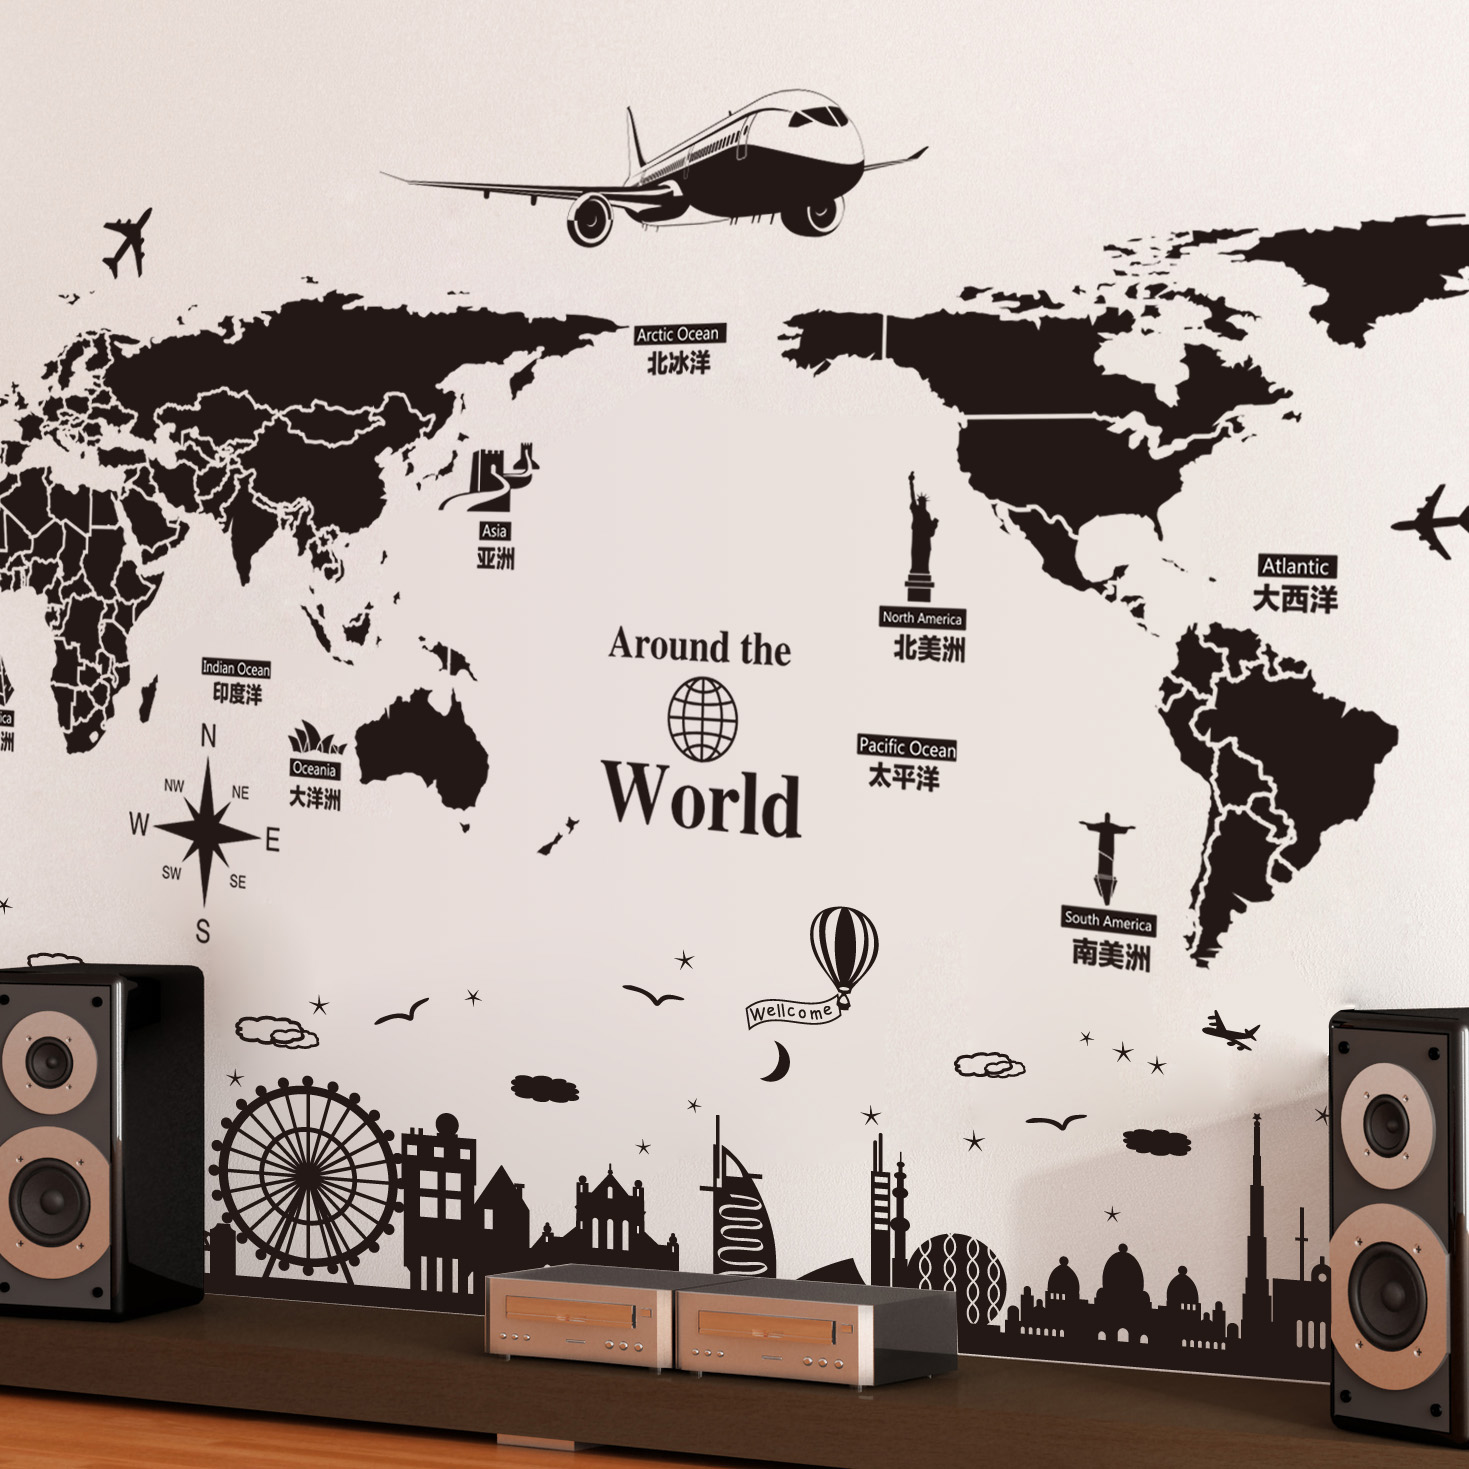 The office of the classroom wall decorations wall stickers removable adhesive wall stickers klimts study creative personalized world map